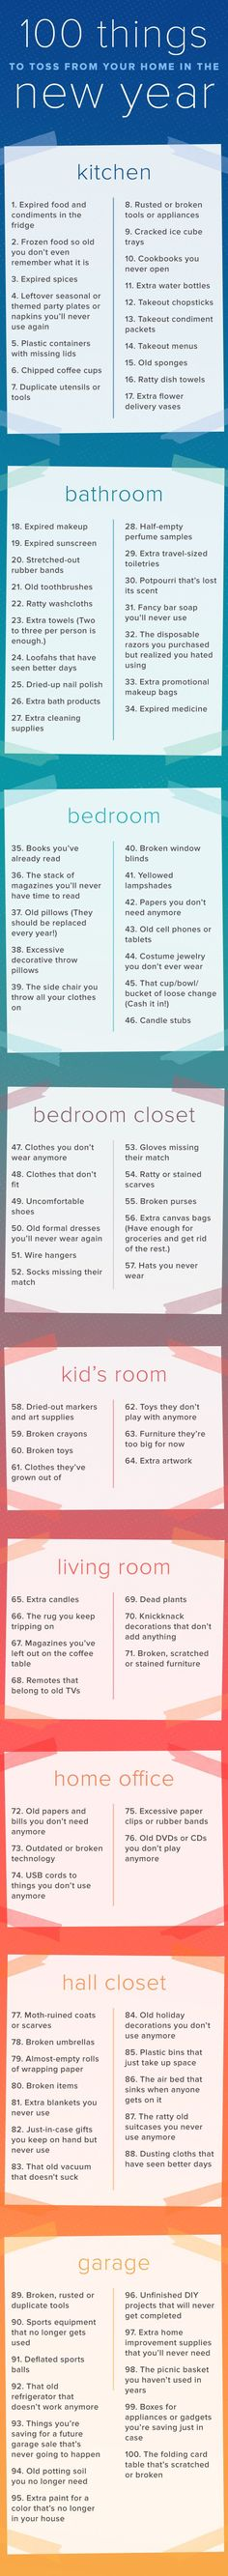 Getting rid of the clutter and organized with this list of things to toss from the bedroom, living room, kitchen, office, bathroom and more.